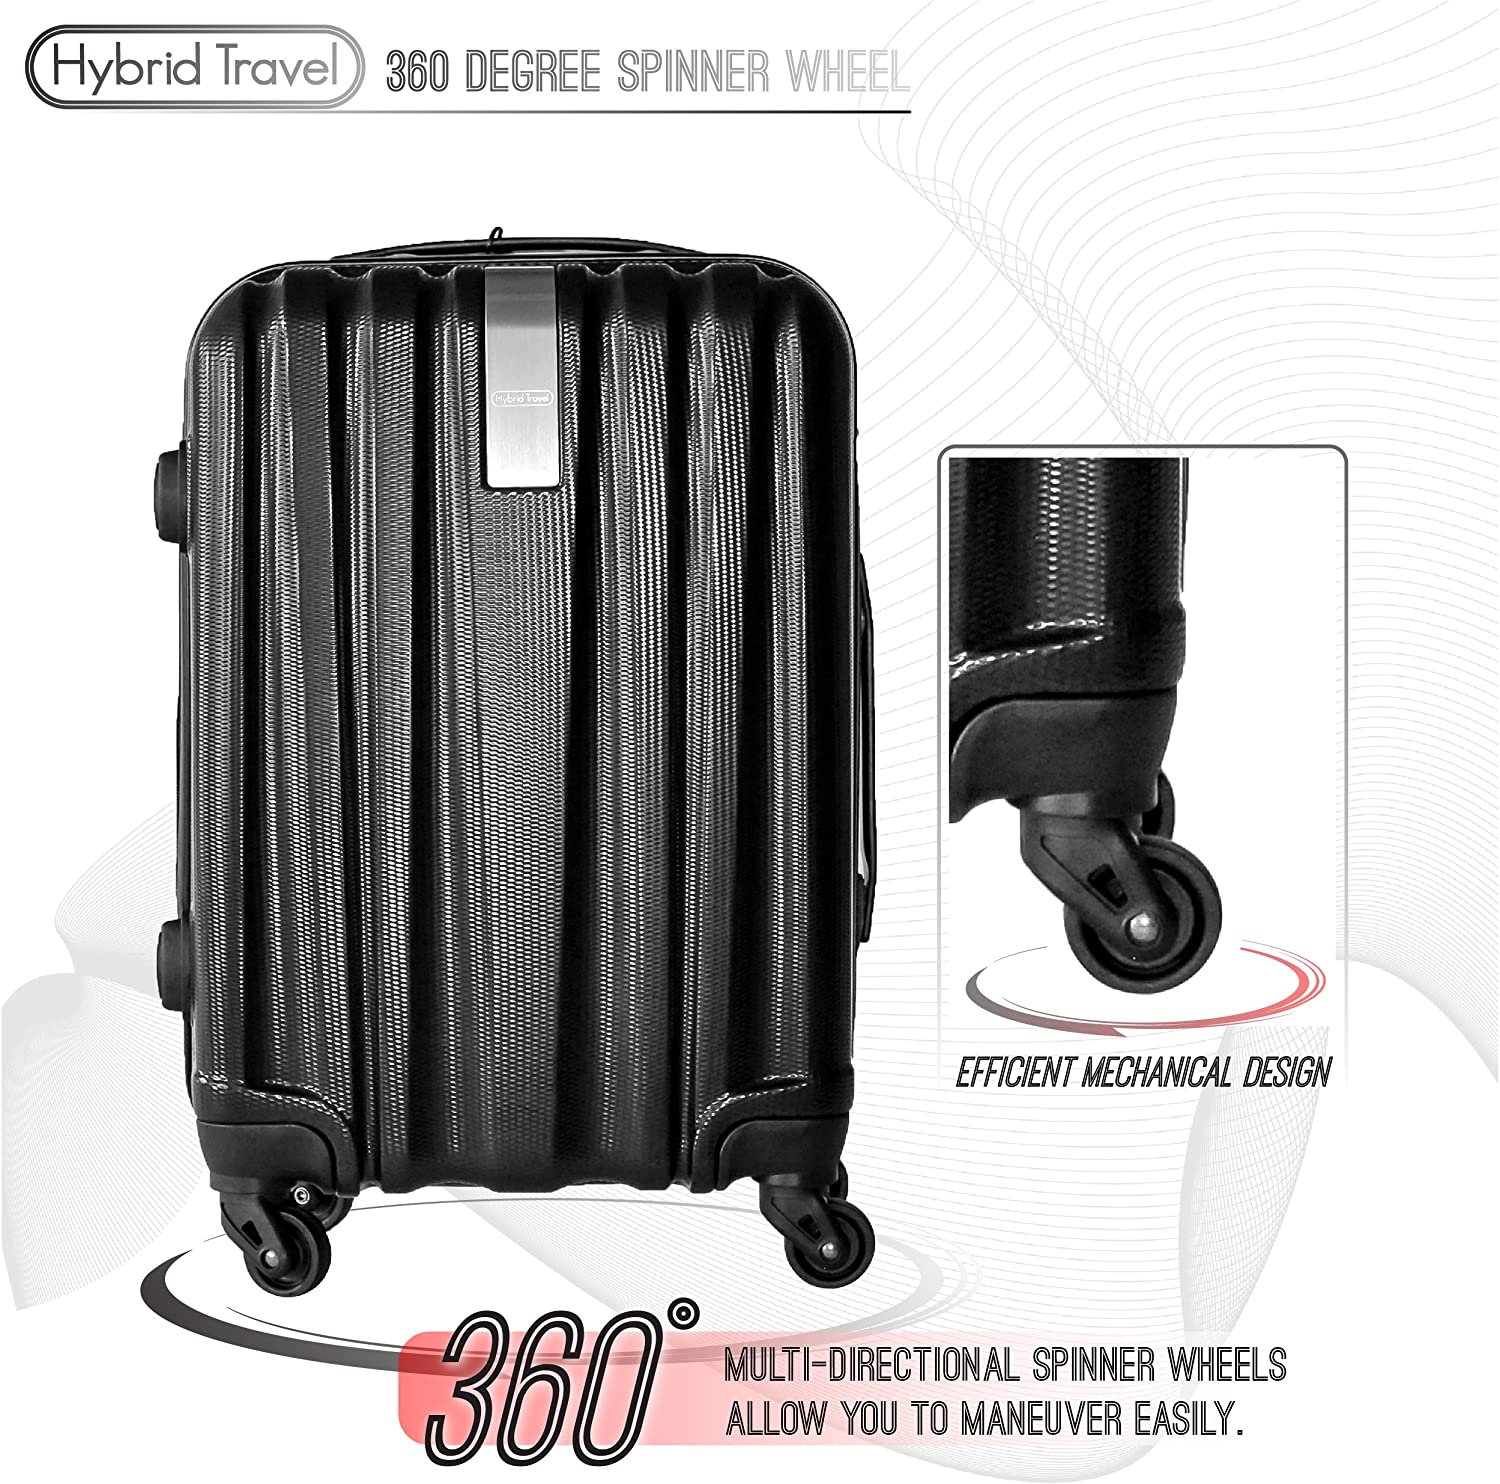 Black 3 Pieces HyBrid /& Company Luggage Set Durable Lightweight Hard Case Spinner Suitcase LUG3-HD1603